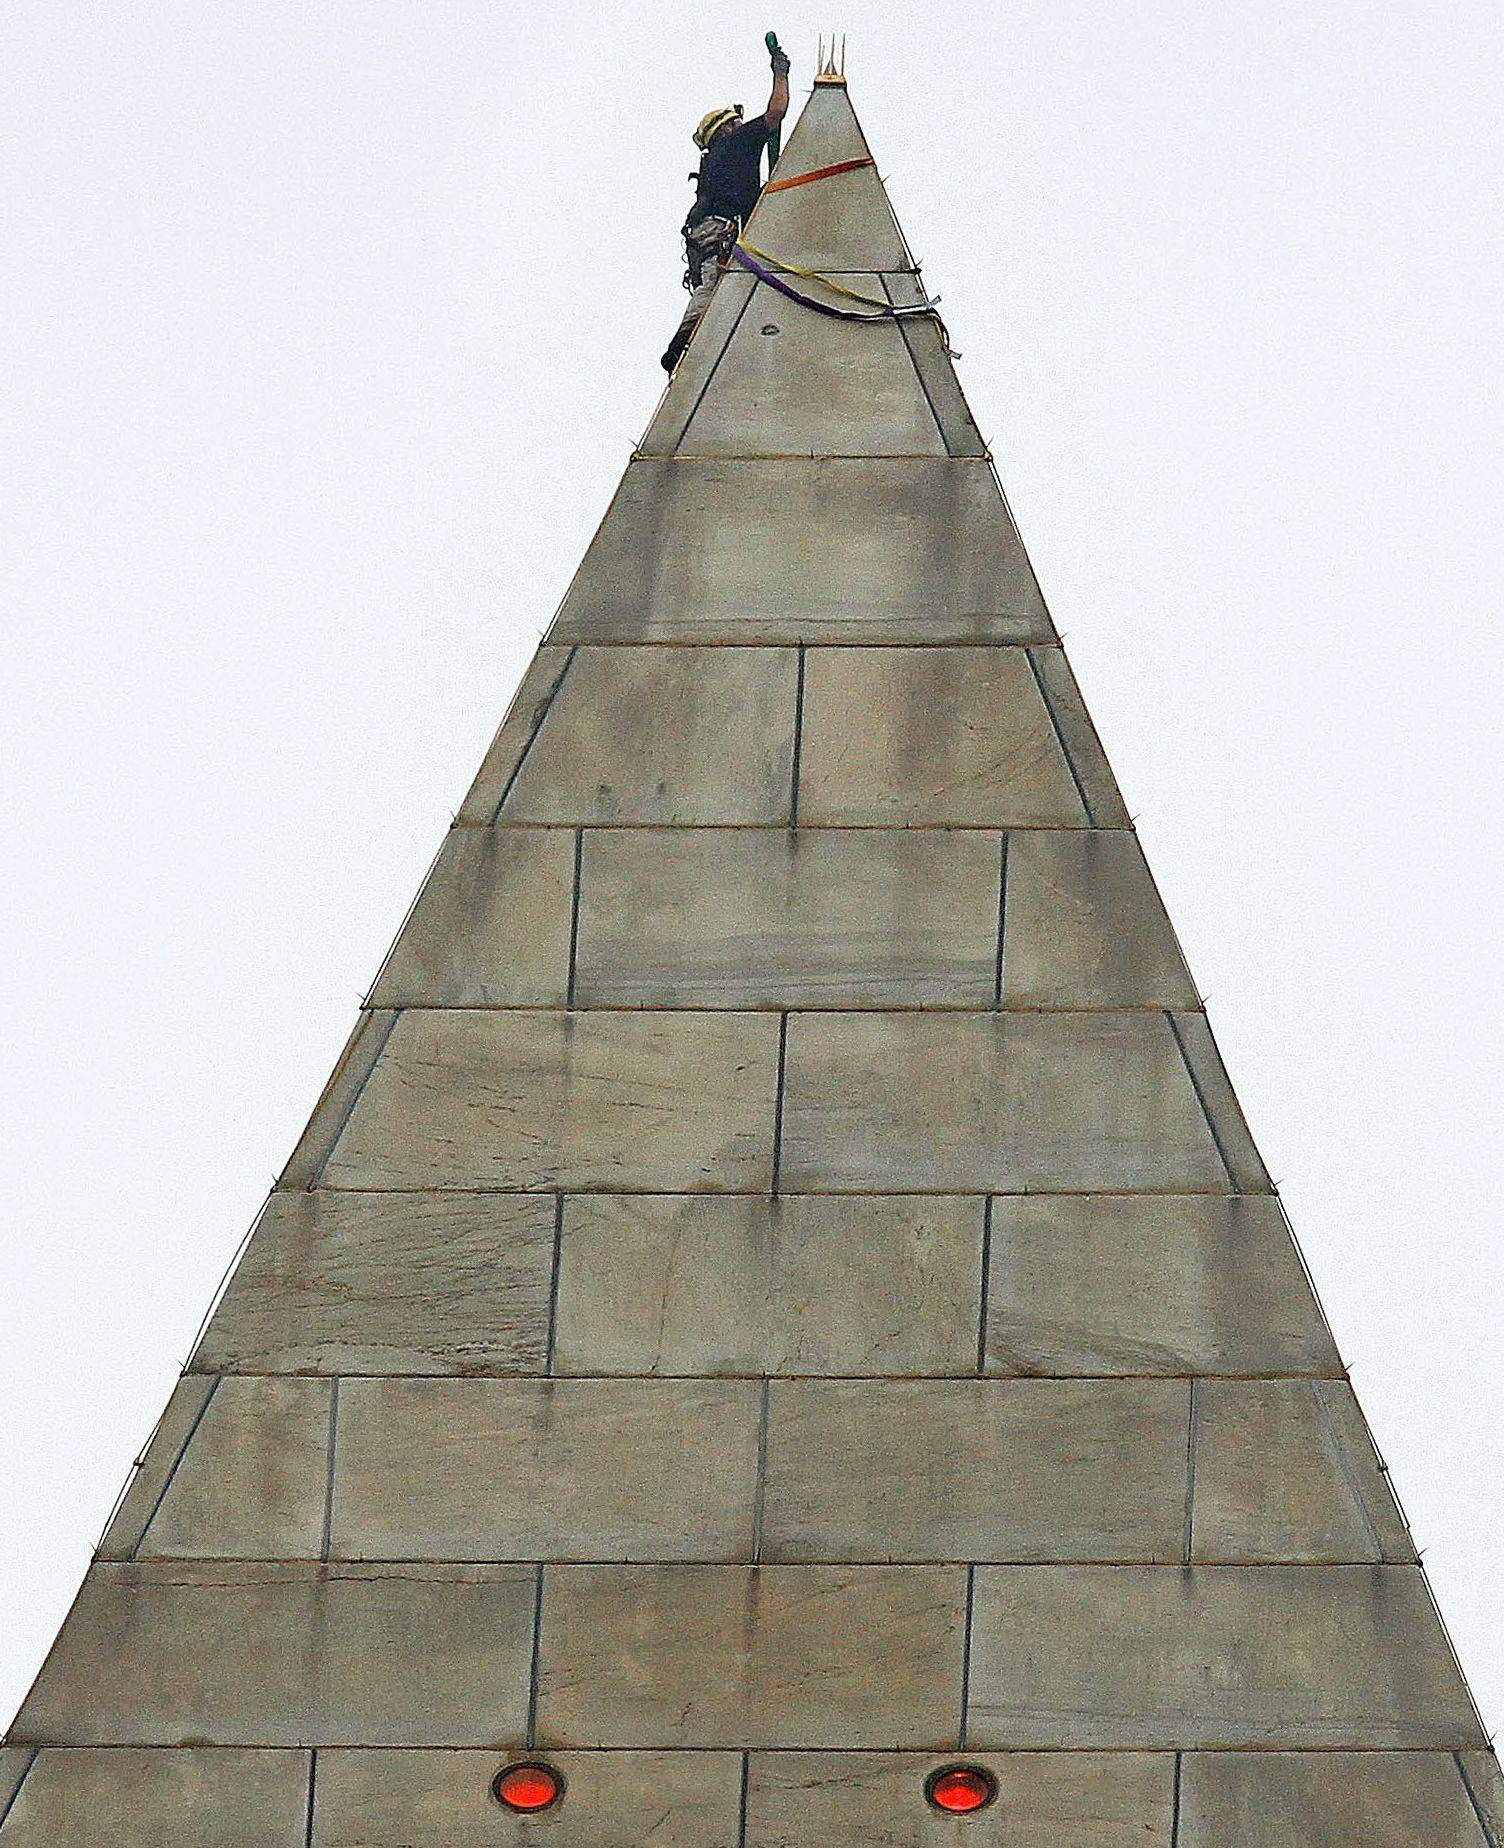 Rigging is attached to the top of the Washington Monument so engineers can rappel down the sides to survey quake damage.